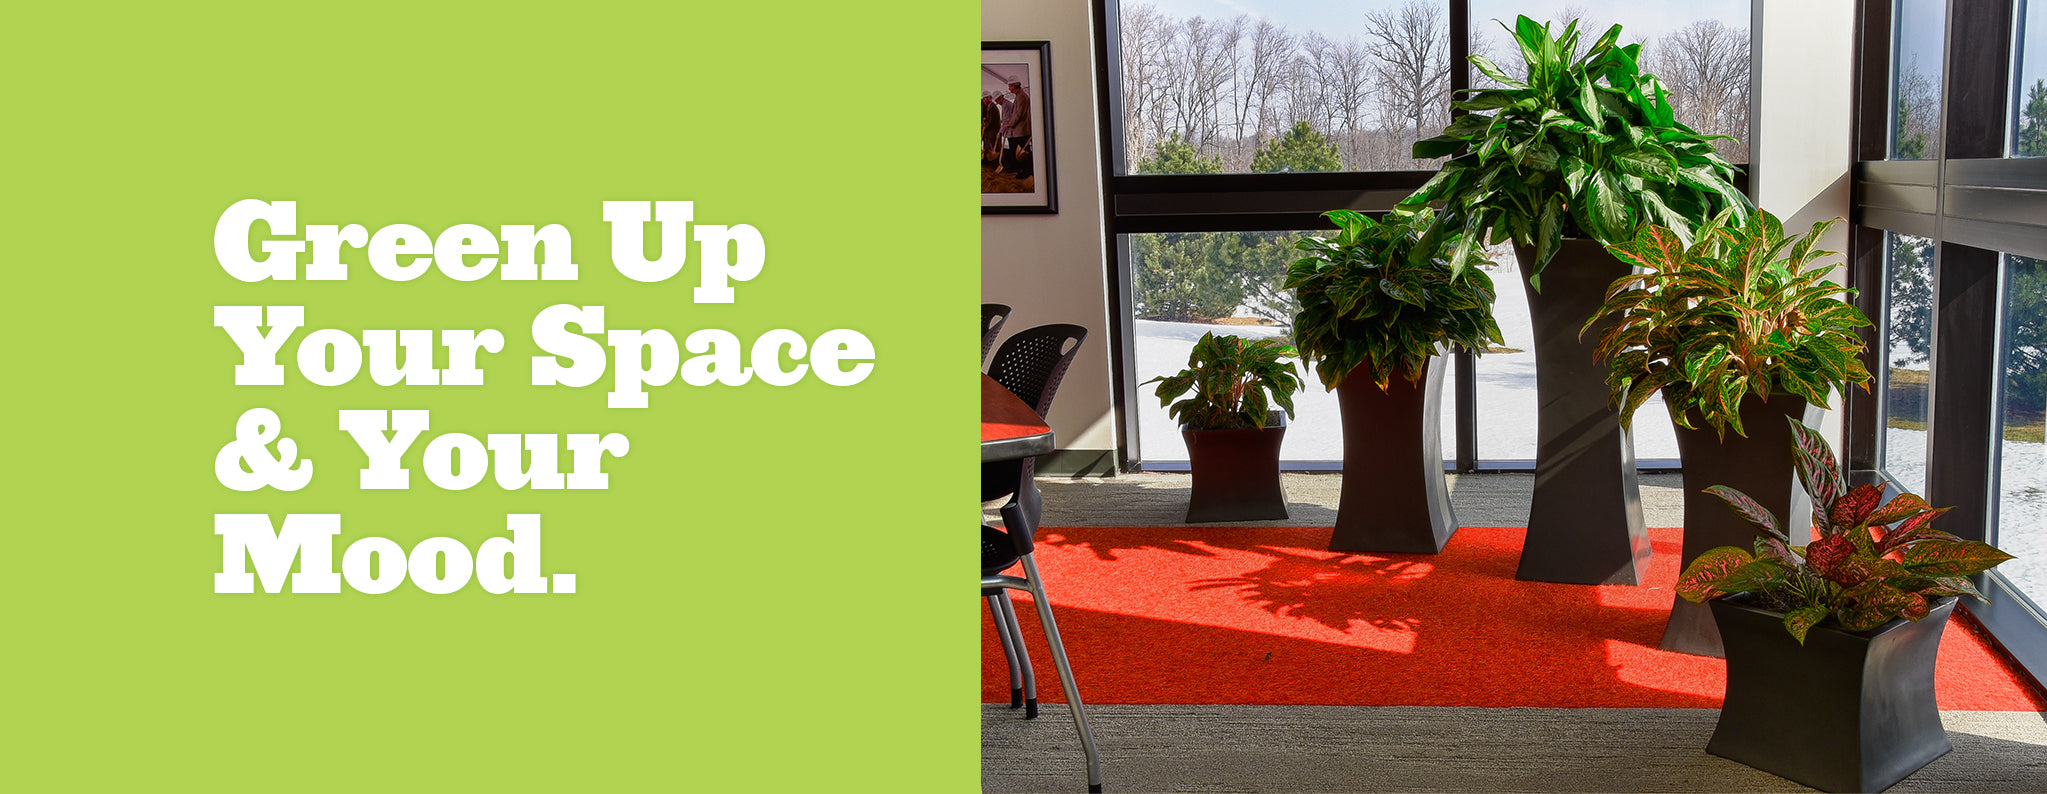 Green up your space and your mood. Botanicus Direct